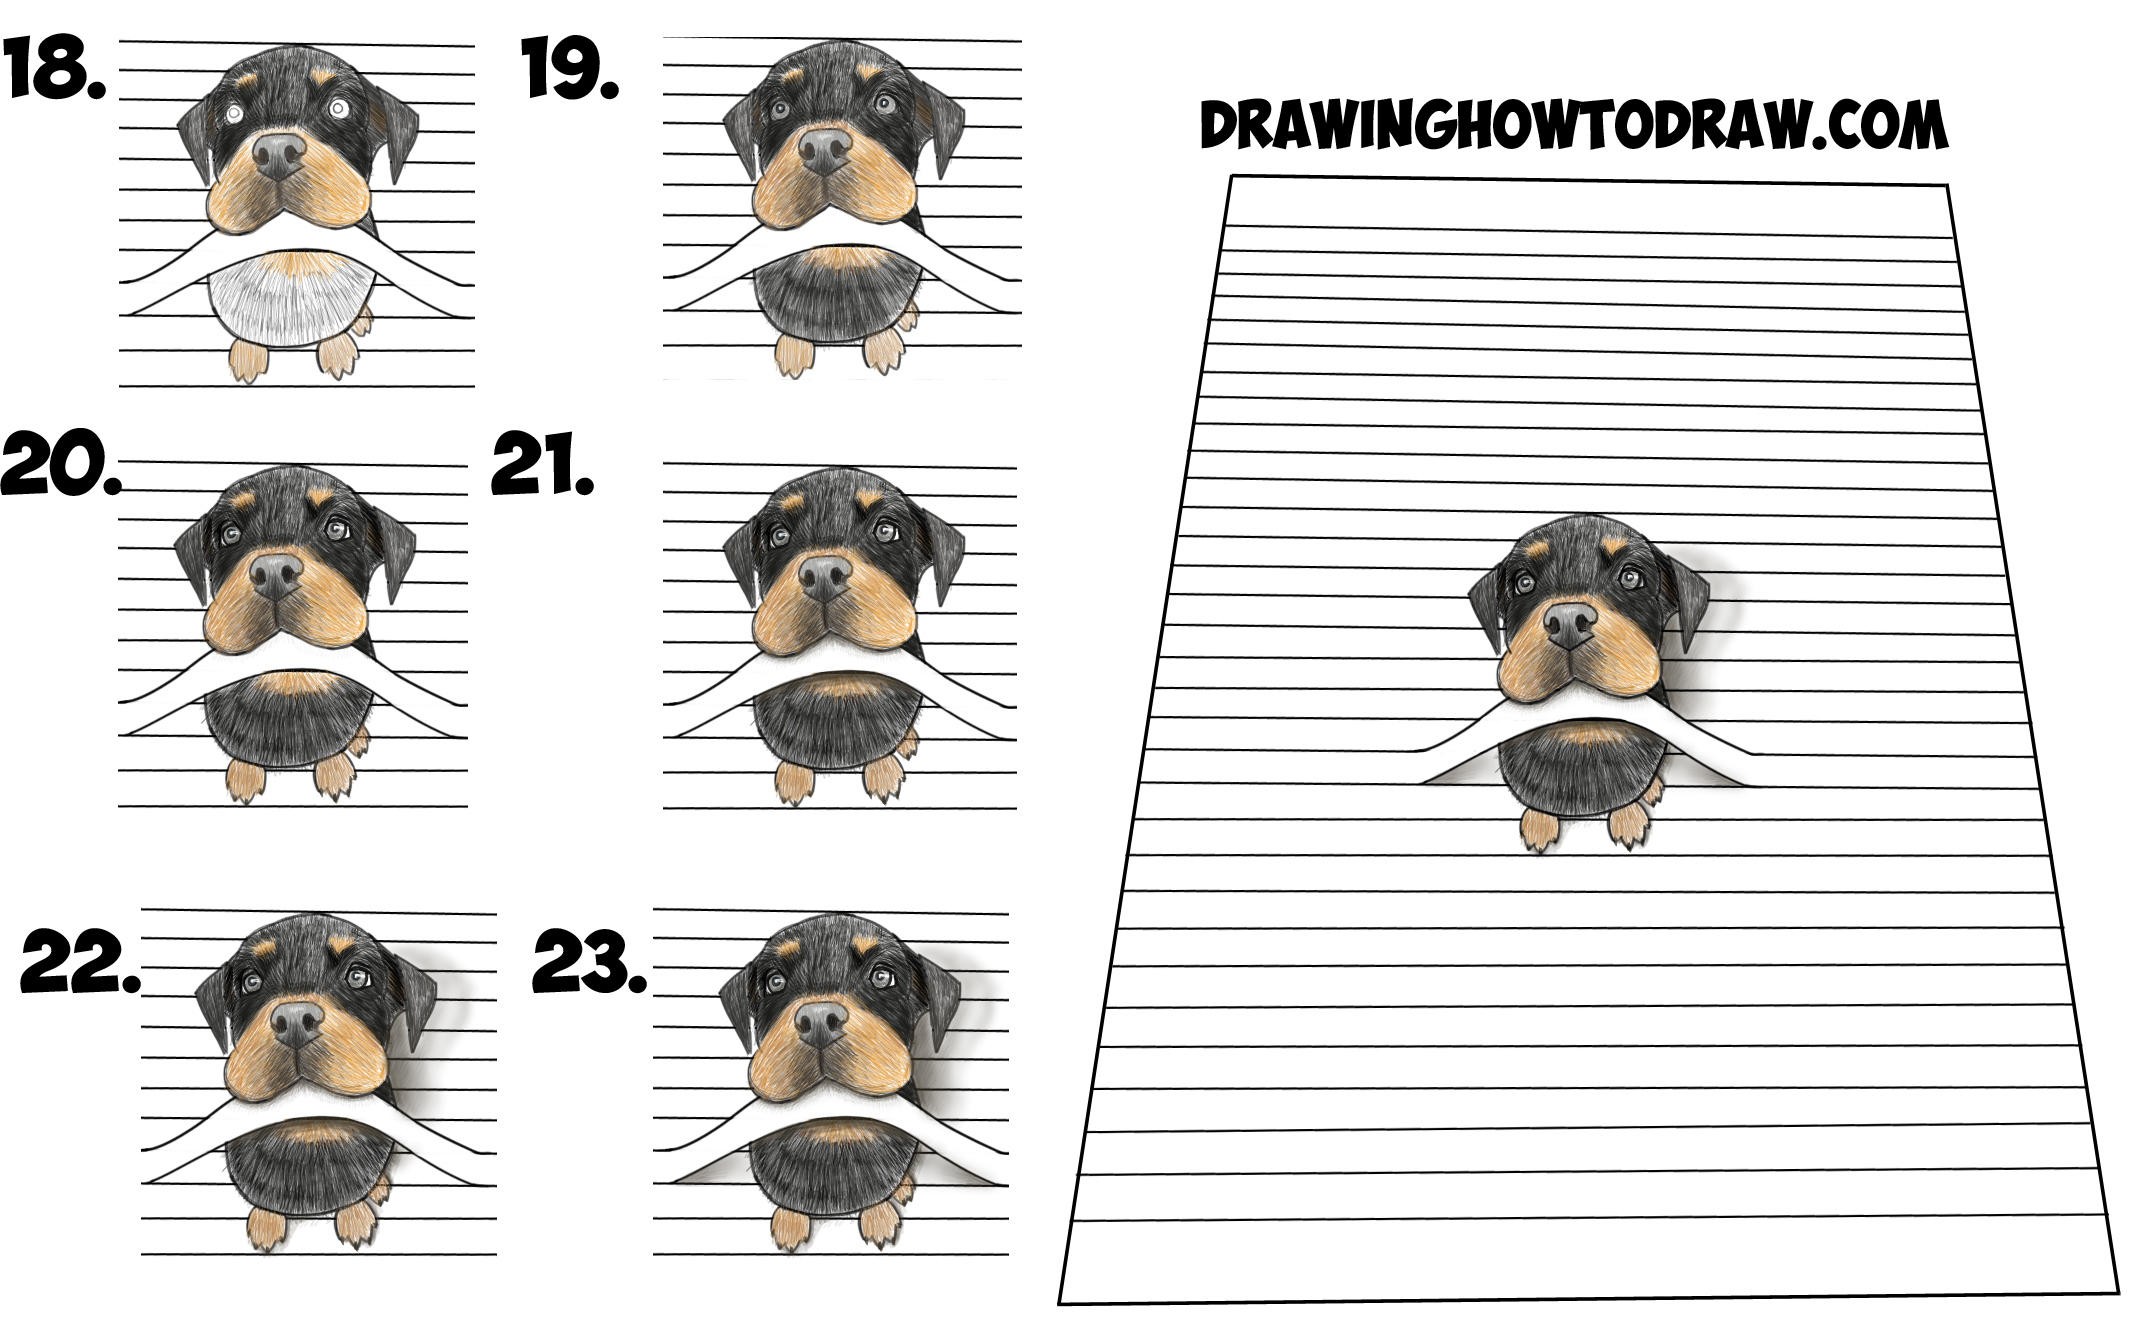 Learn How to Draw a Cool 3D Rottweiler Puppy Dog Biting a Line from Lined Notebook Paper Simple Steps Drawing Lesson for Children & Beginners